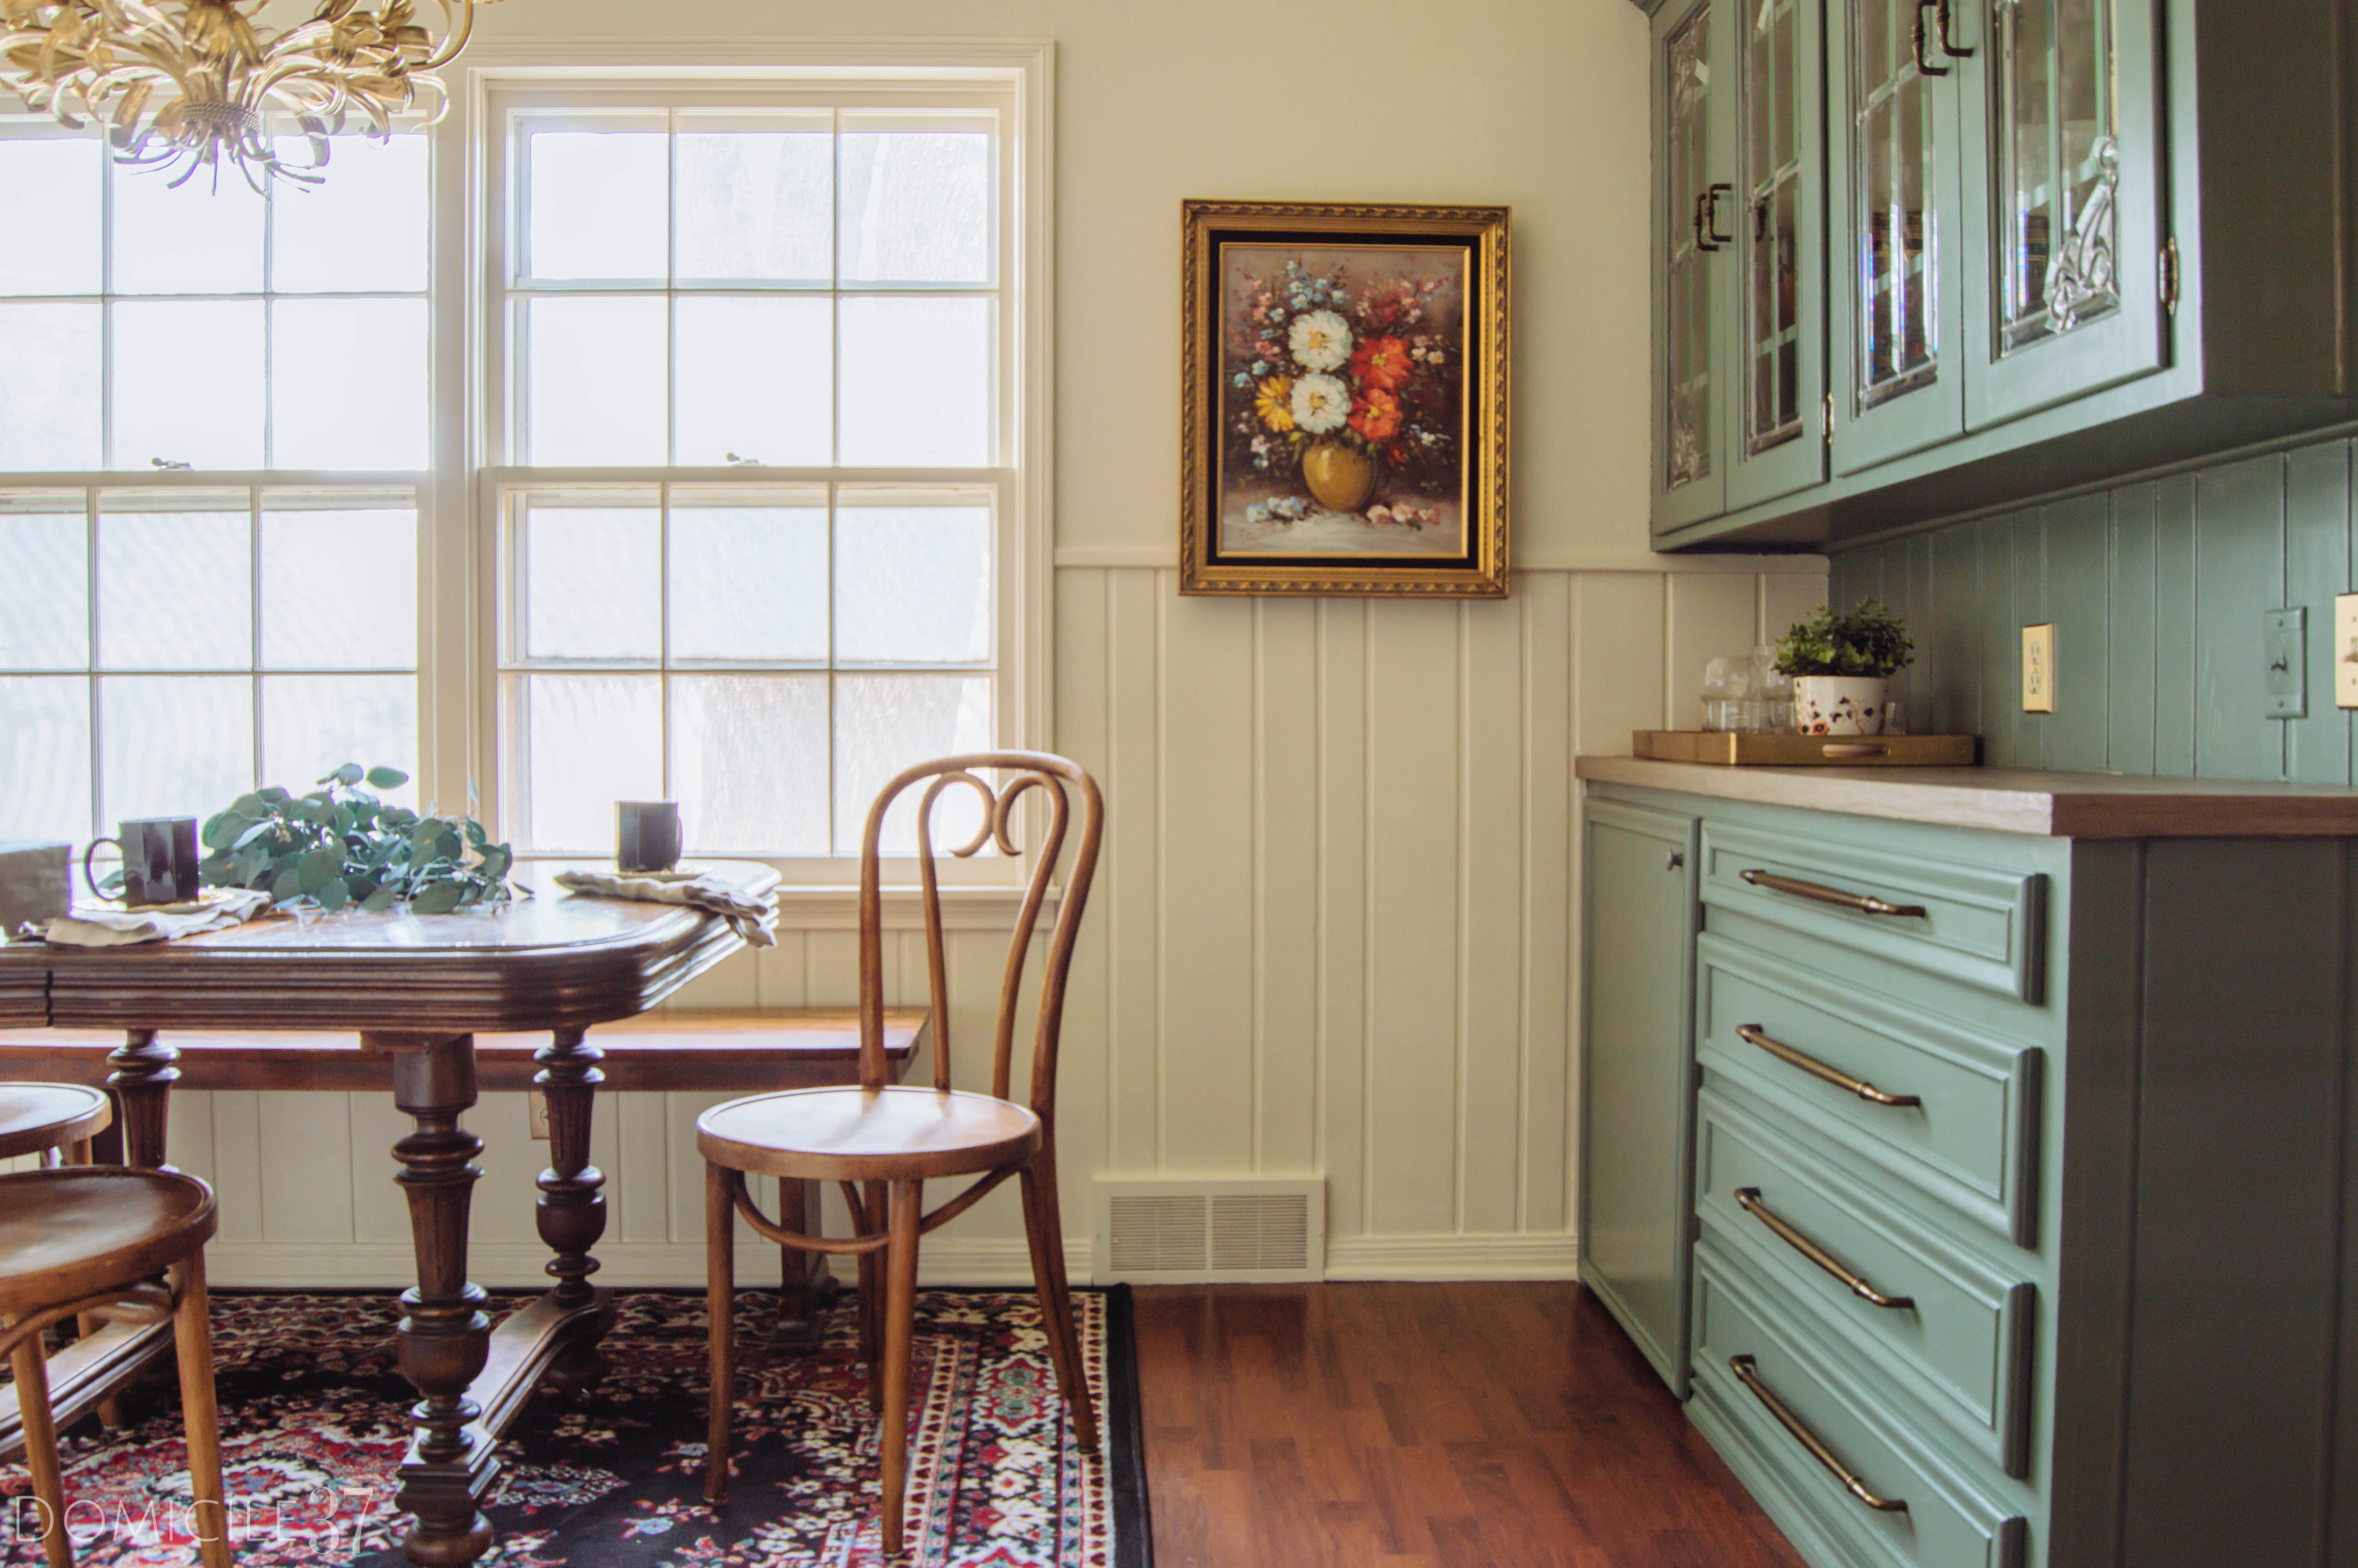 One Room Challenge, European Inspired Breakfast Area, Dining Room Makeover, Vintage Wood Table, Farrow and Ball, Thomas Mach, Clay subway tile, Creame cabinets white subway tile, Farrow and Ball Clunch Paint, simple decor styling, italian toleware chandelier, persian rug dining room, DIY gold leaf light fixture, vintage oil painting, green kitchen cabinets